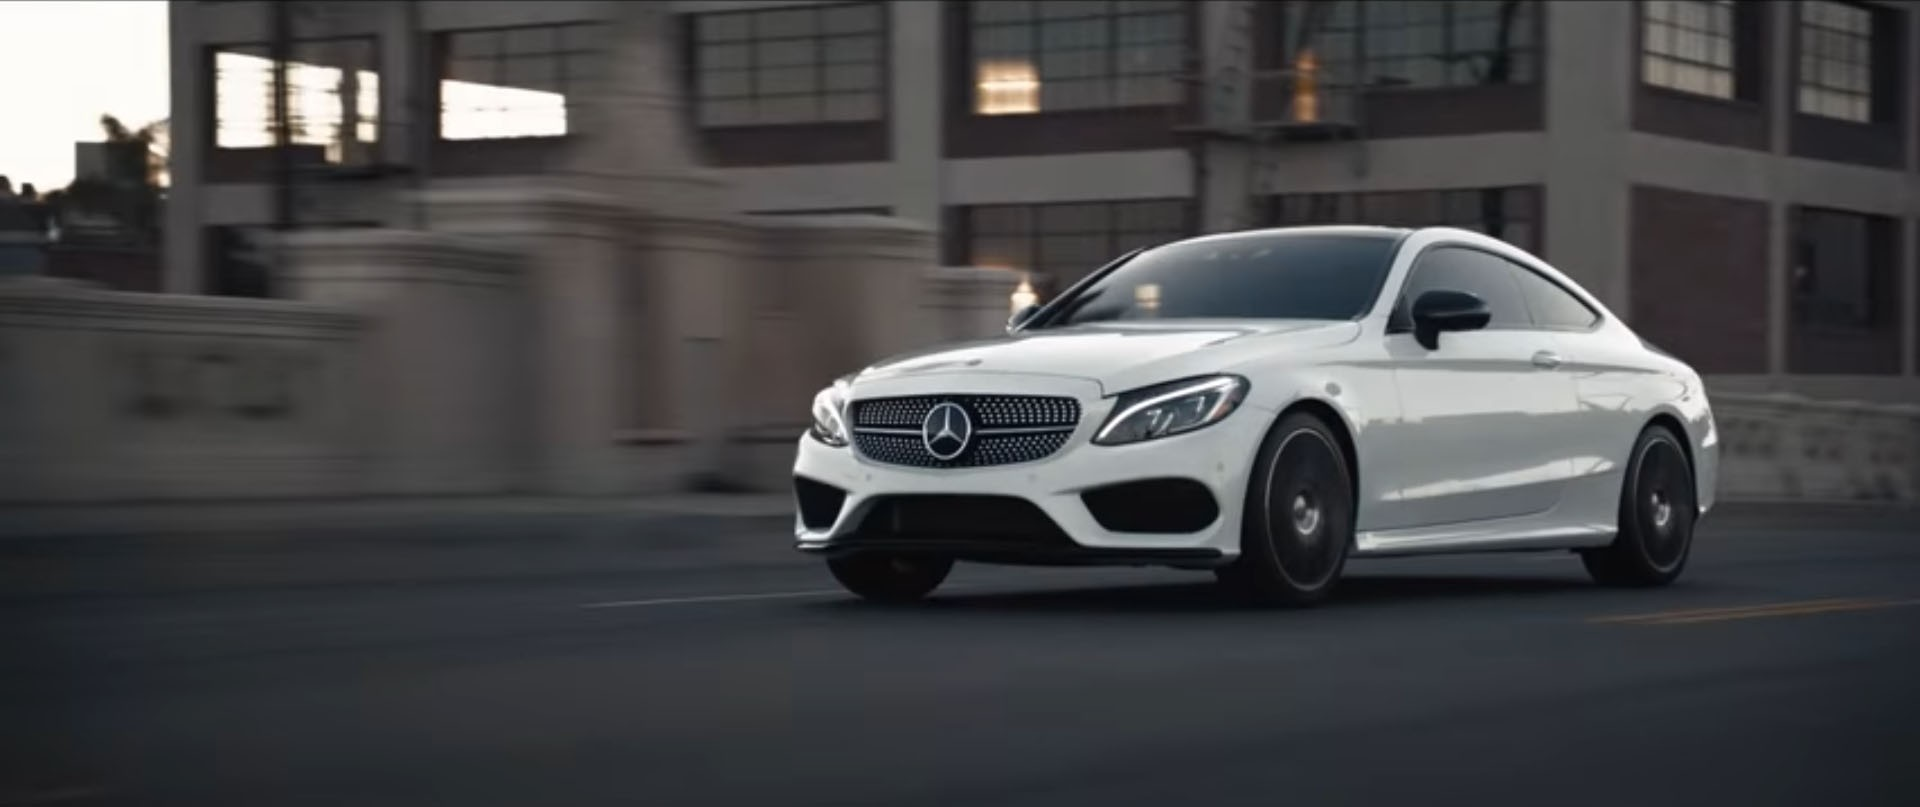 Mercedes benz c class commercial does the exact opposite for Mercedes benz commercial